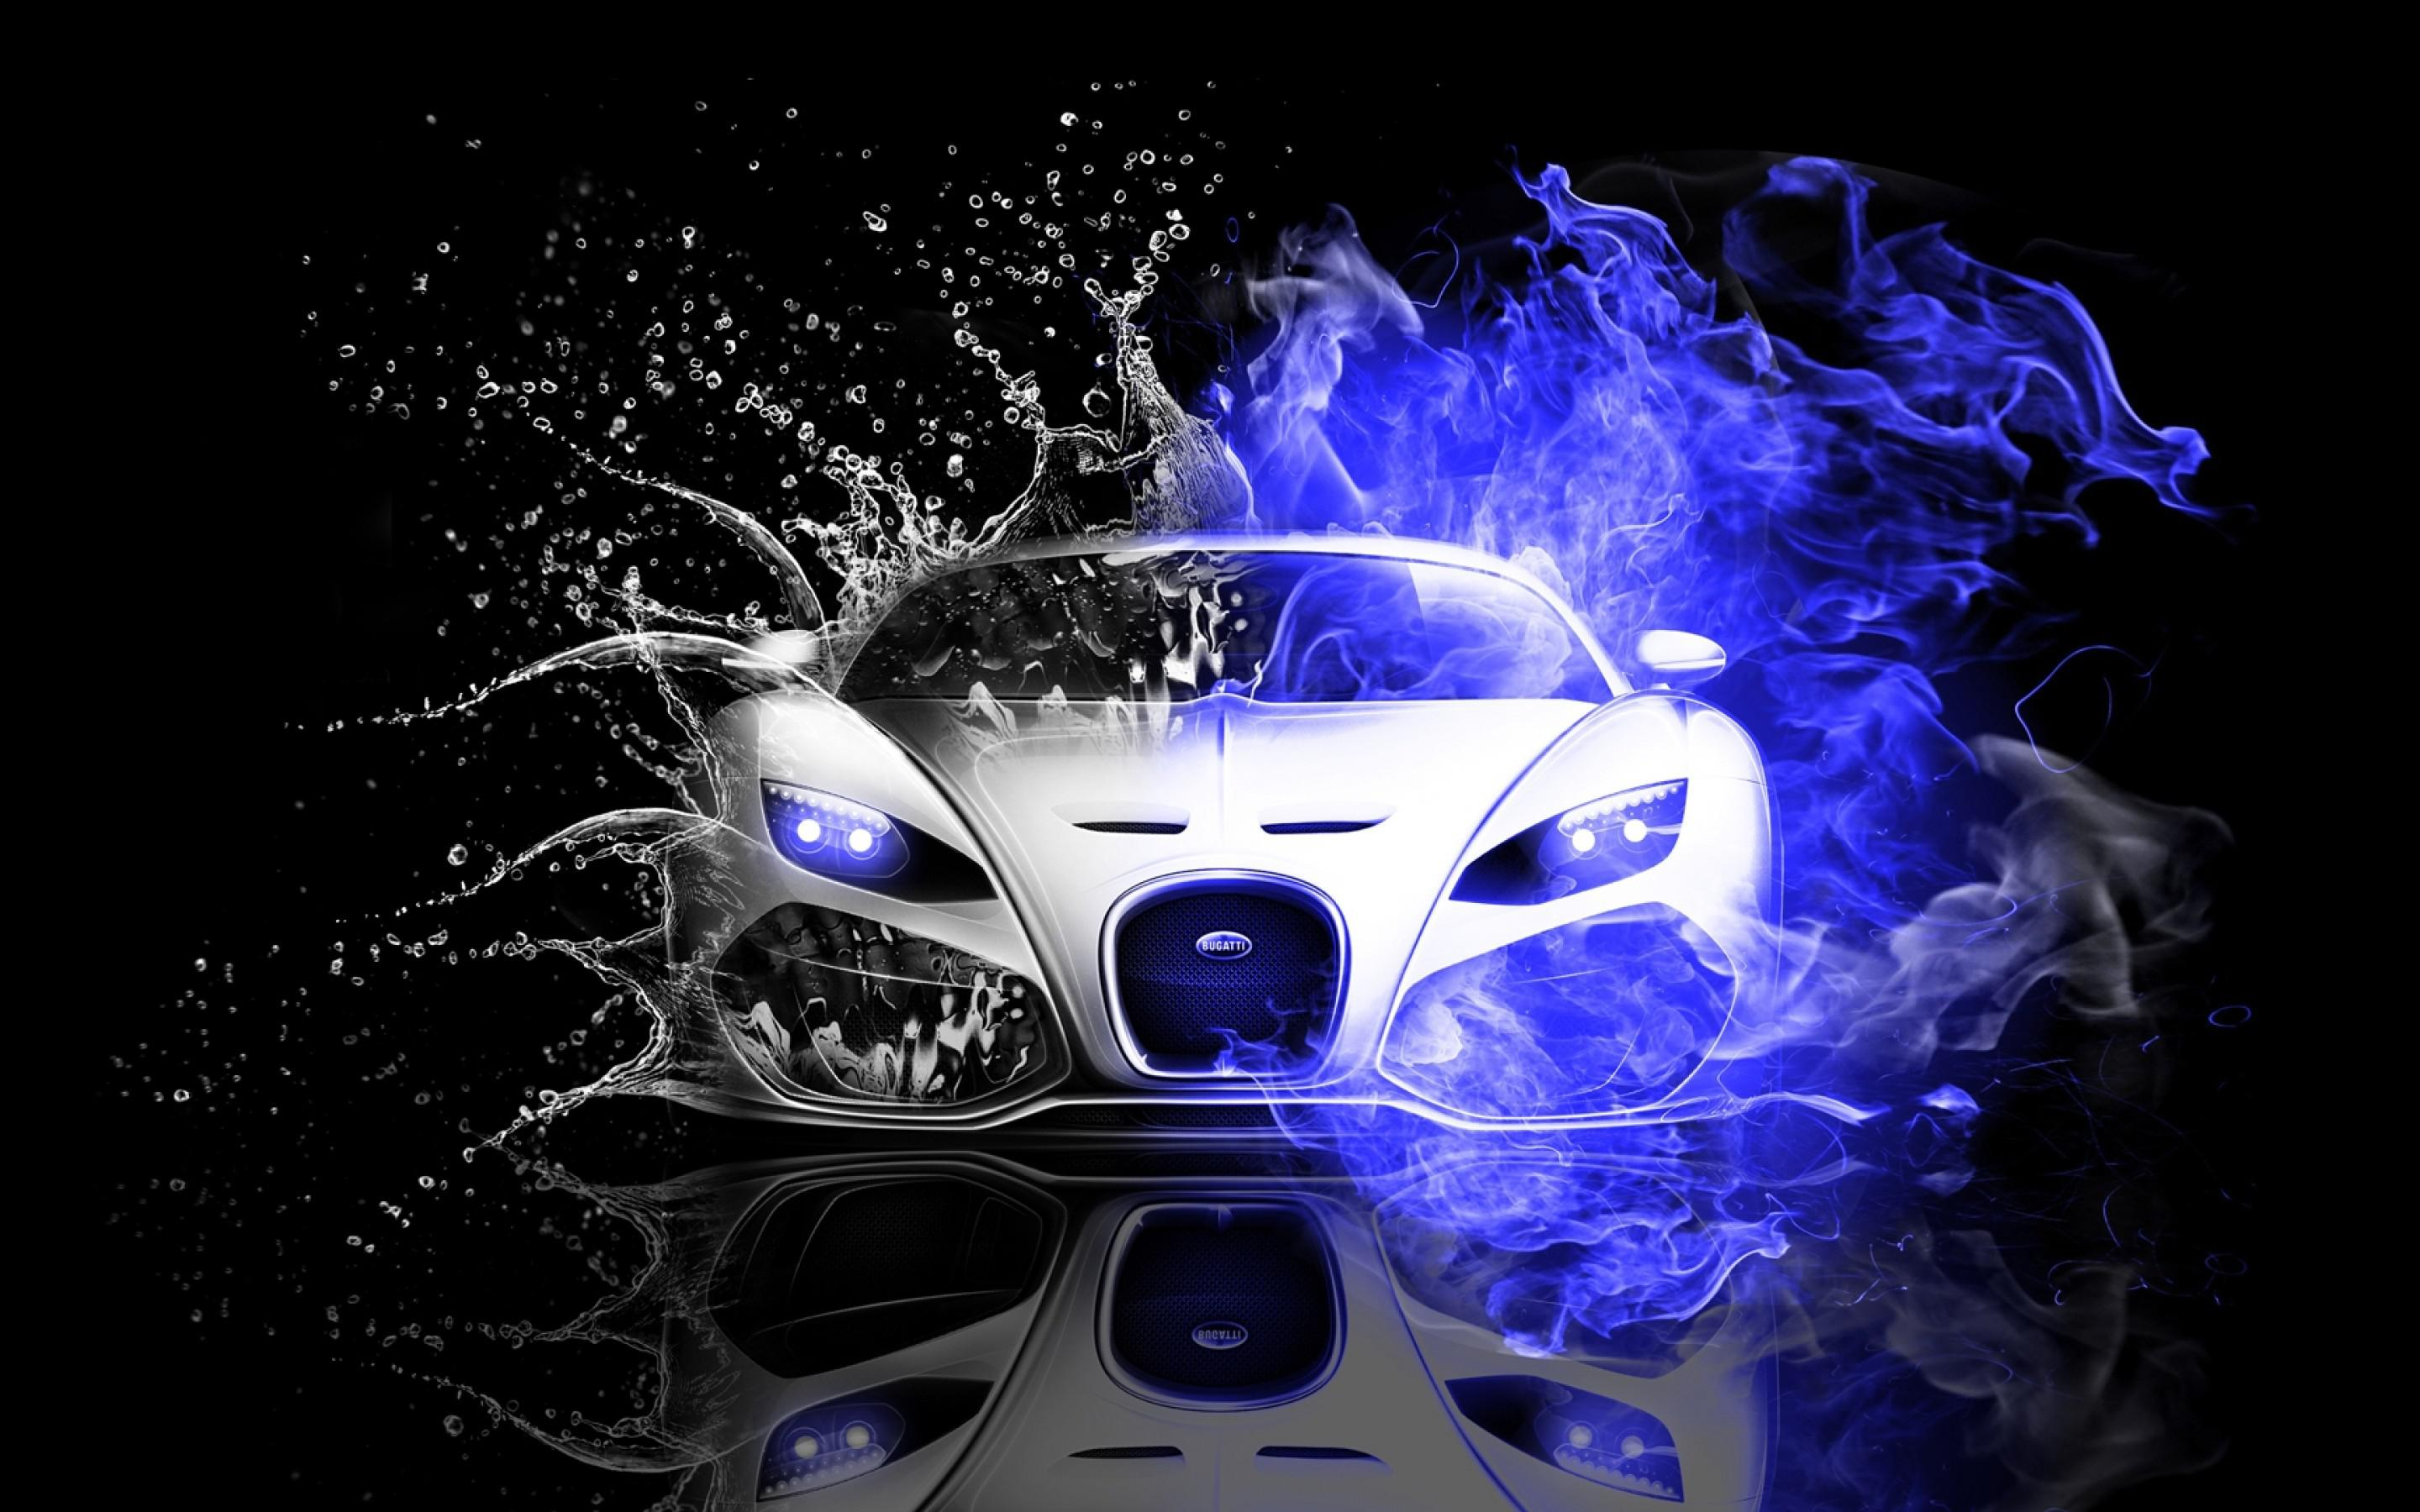 50 Super Sports Car Wallpapers Thatll Blow Your Desktop Away 2880x1800